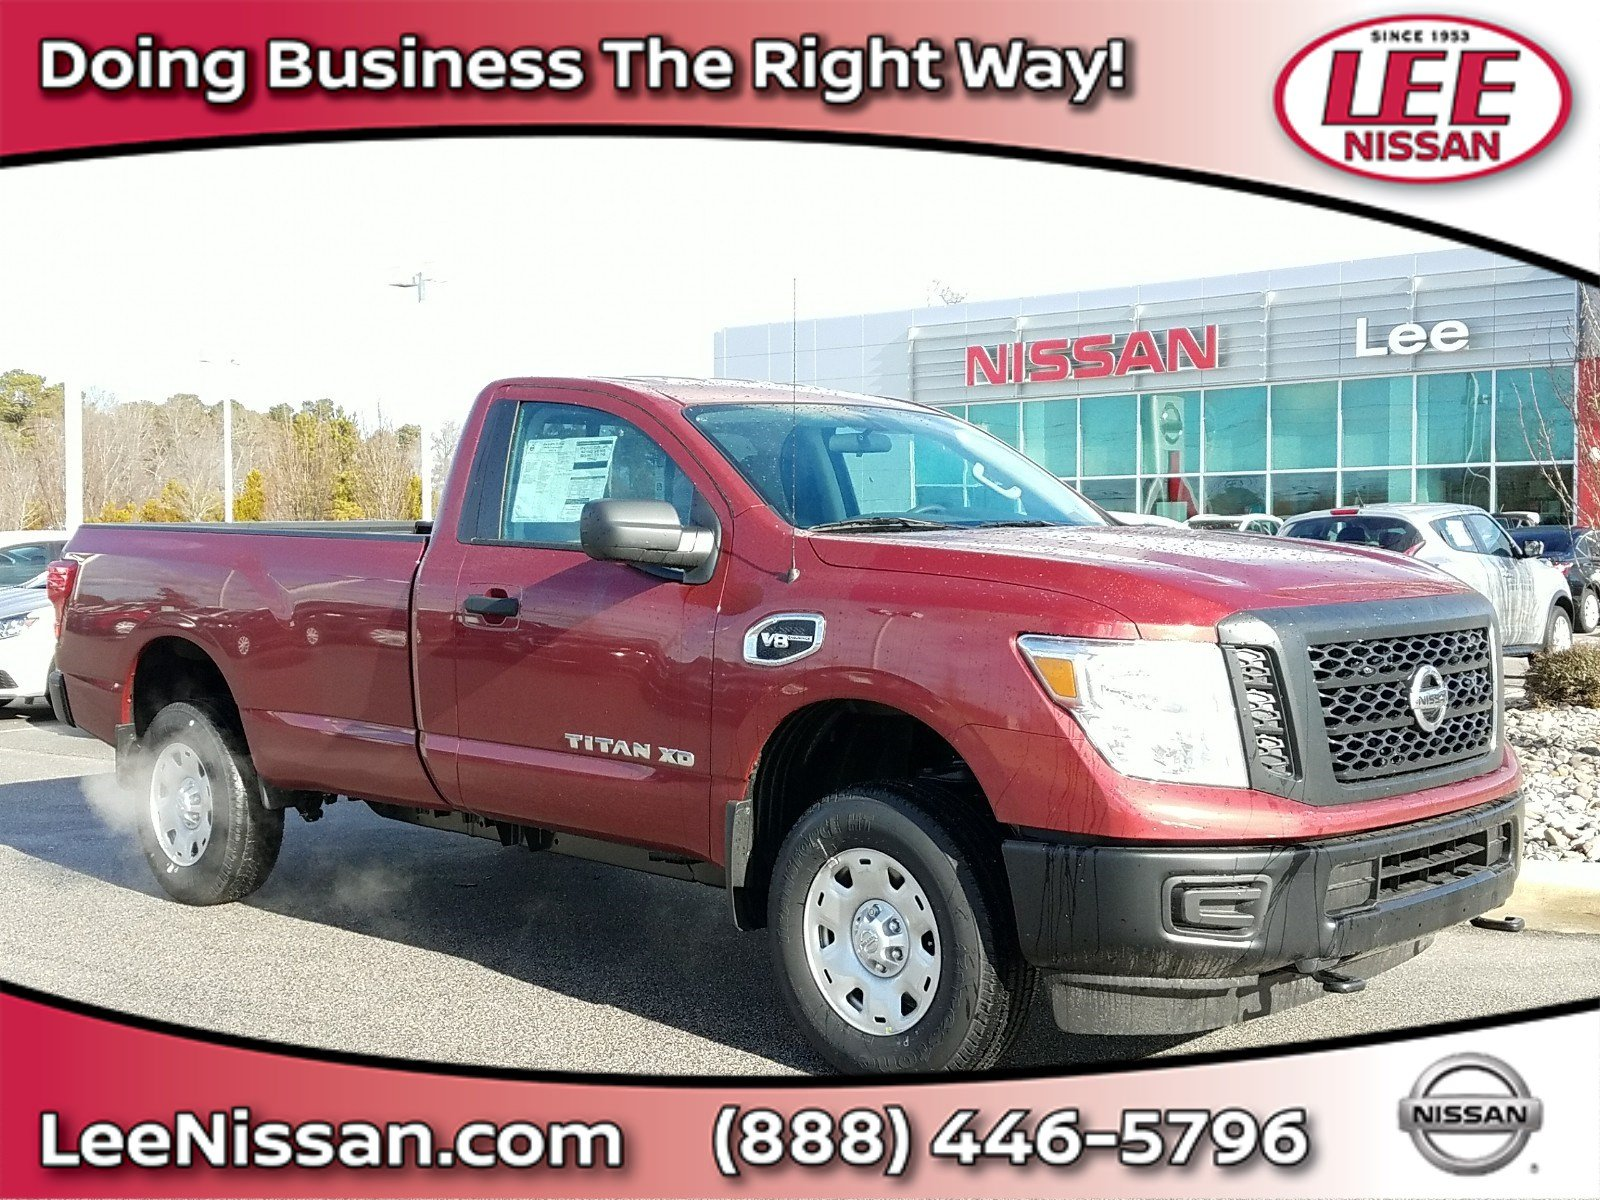 2018 Nissan Titan XD S 4x4 Gas Single Cab S for sale in Wilson, NC.